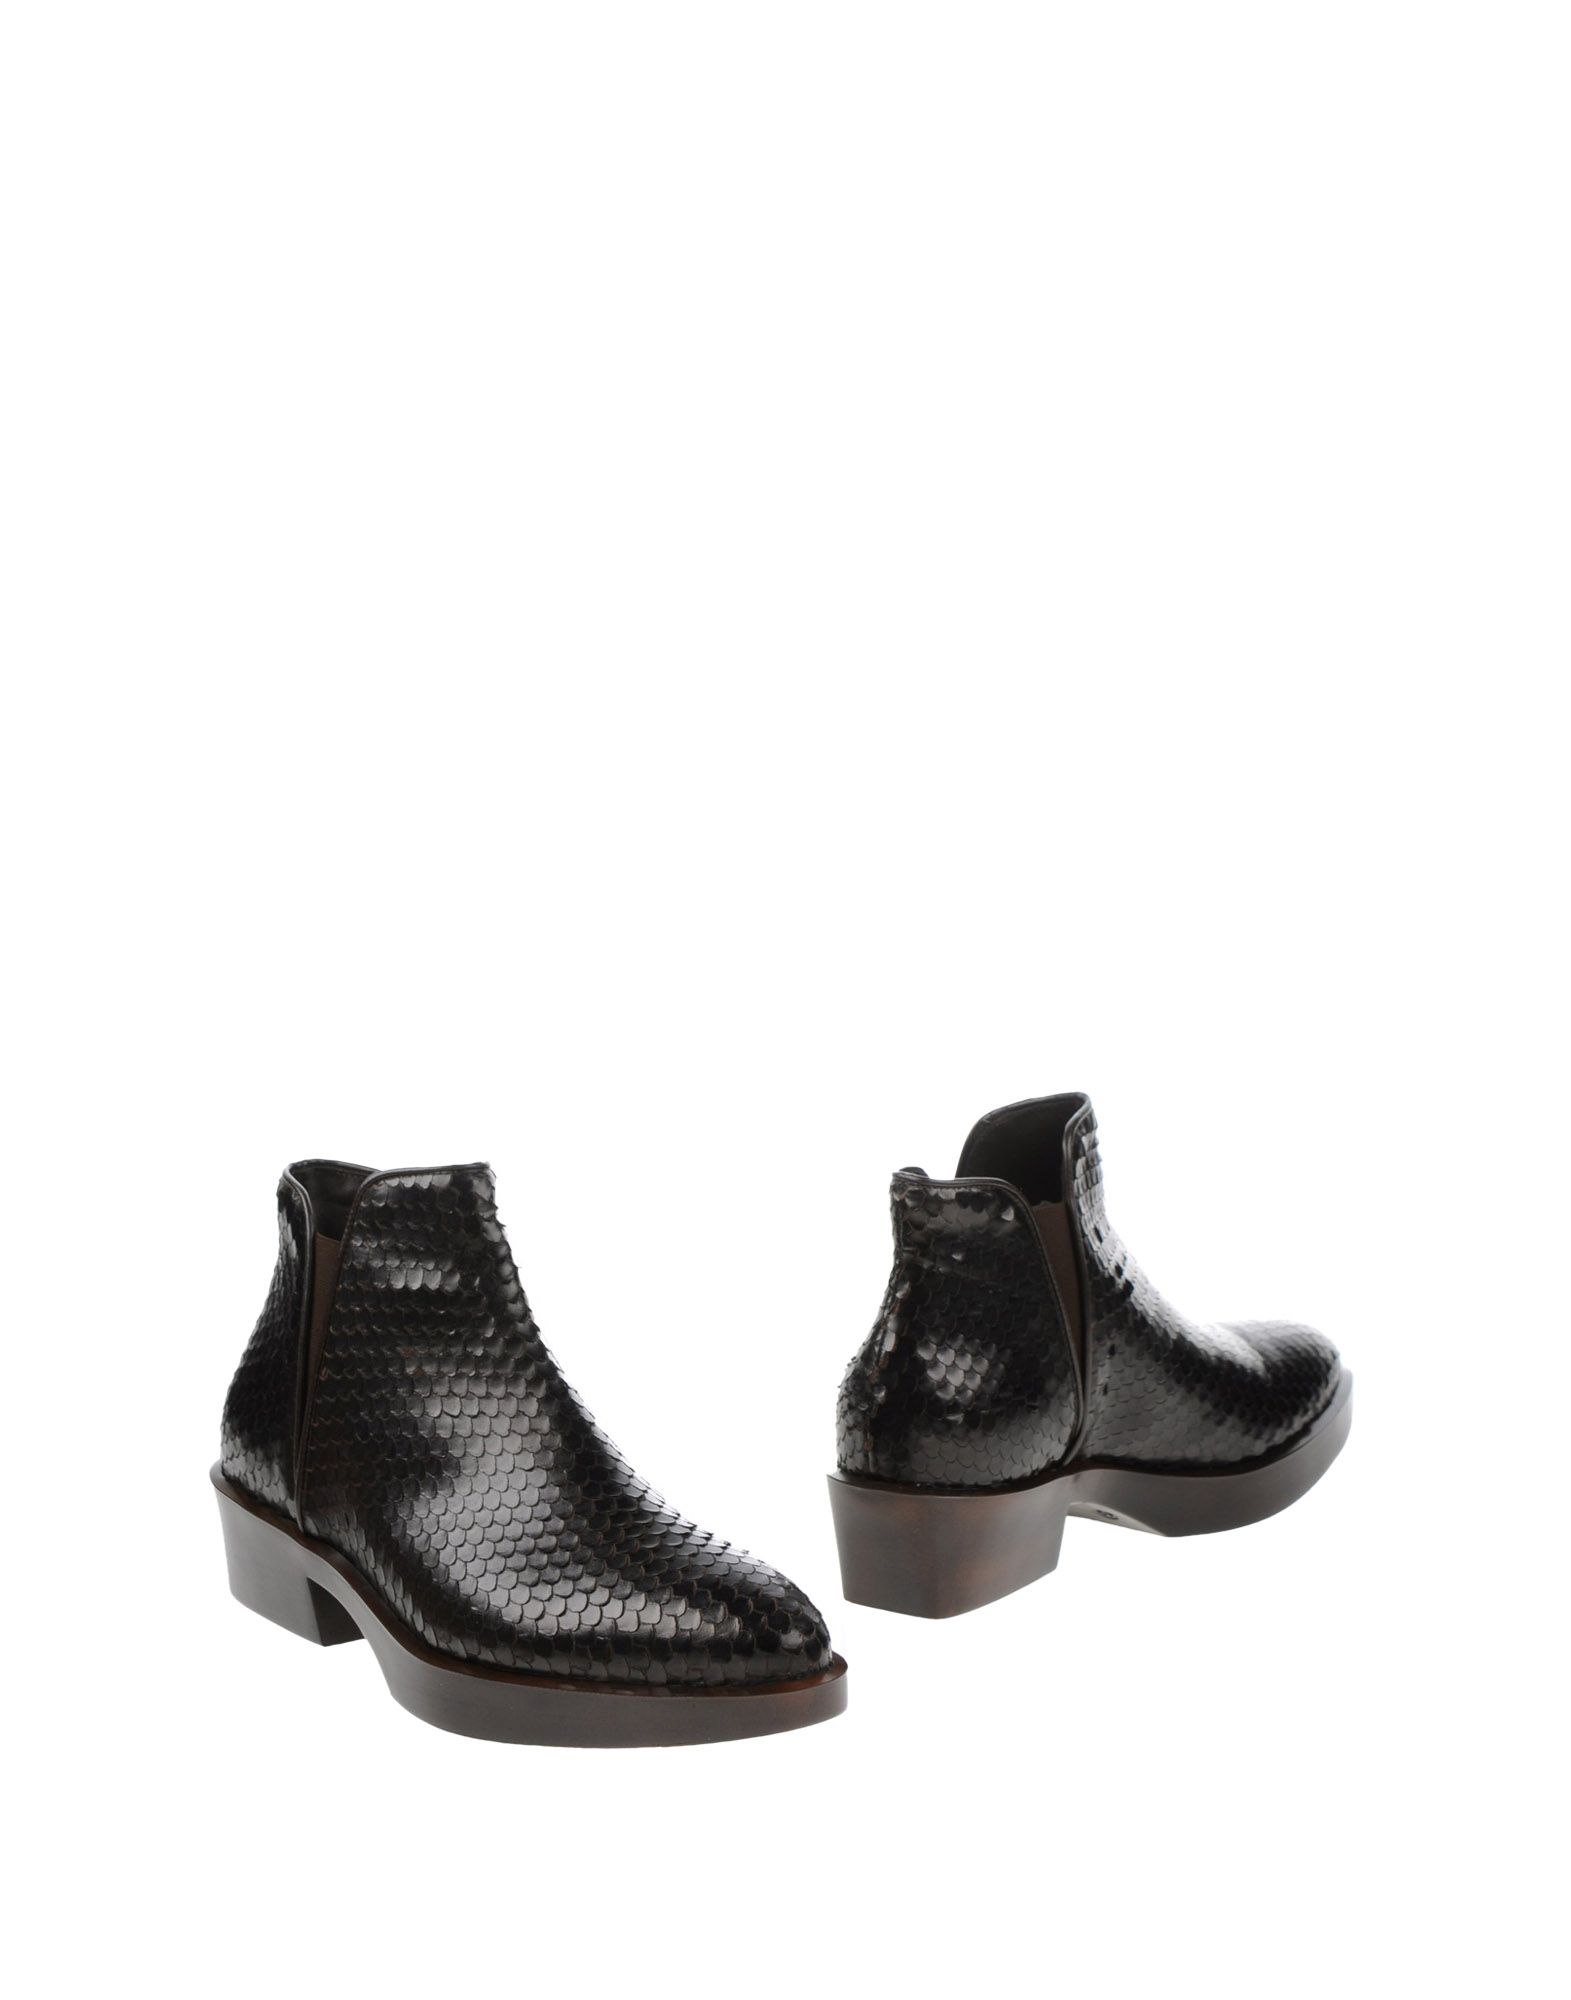 Jeannot Ankle Boot Boots - Women Jeannot Ankle Boots Boot online on  Australia - 11214530PF 1c582c